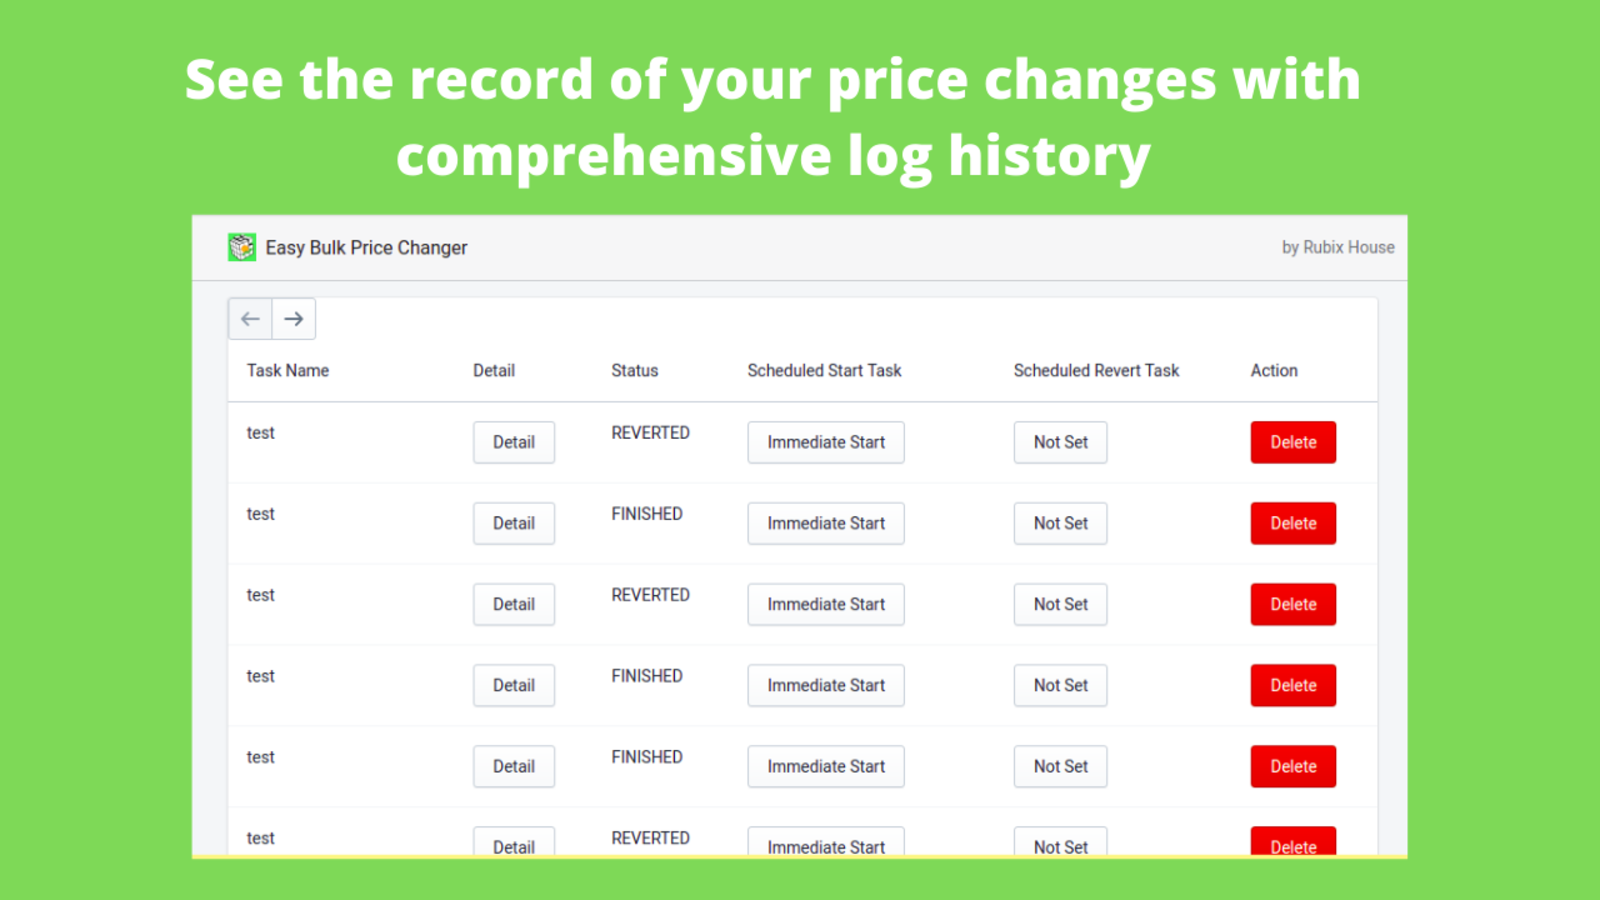 see the record of your price changes with comprehensive log